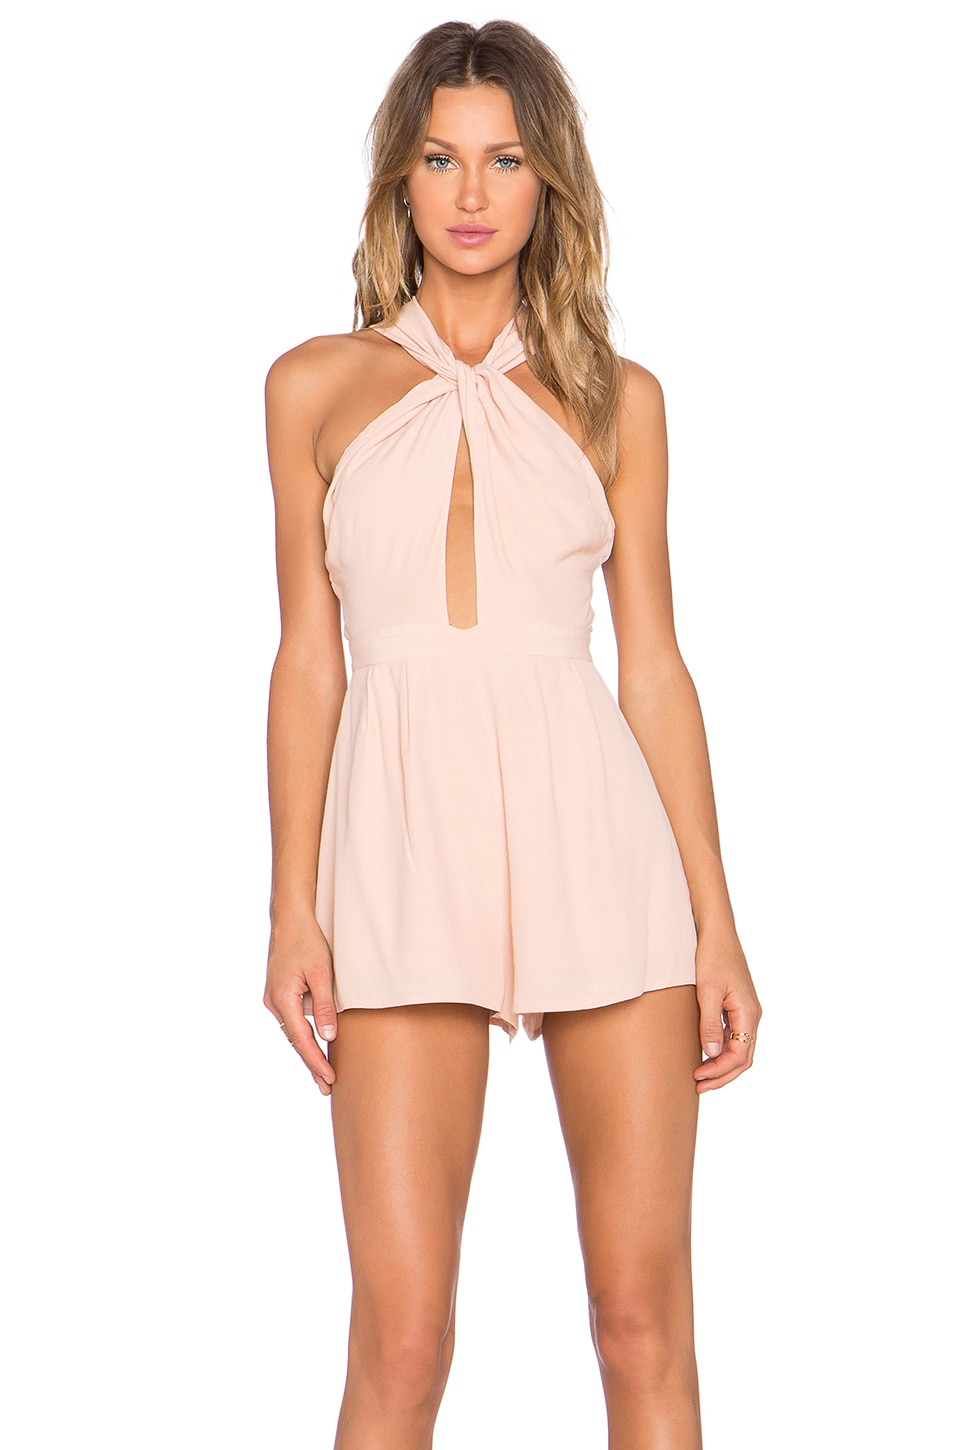 NBD Got Me Twisted Romper in Nude